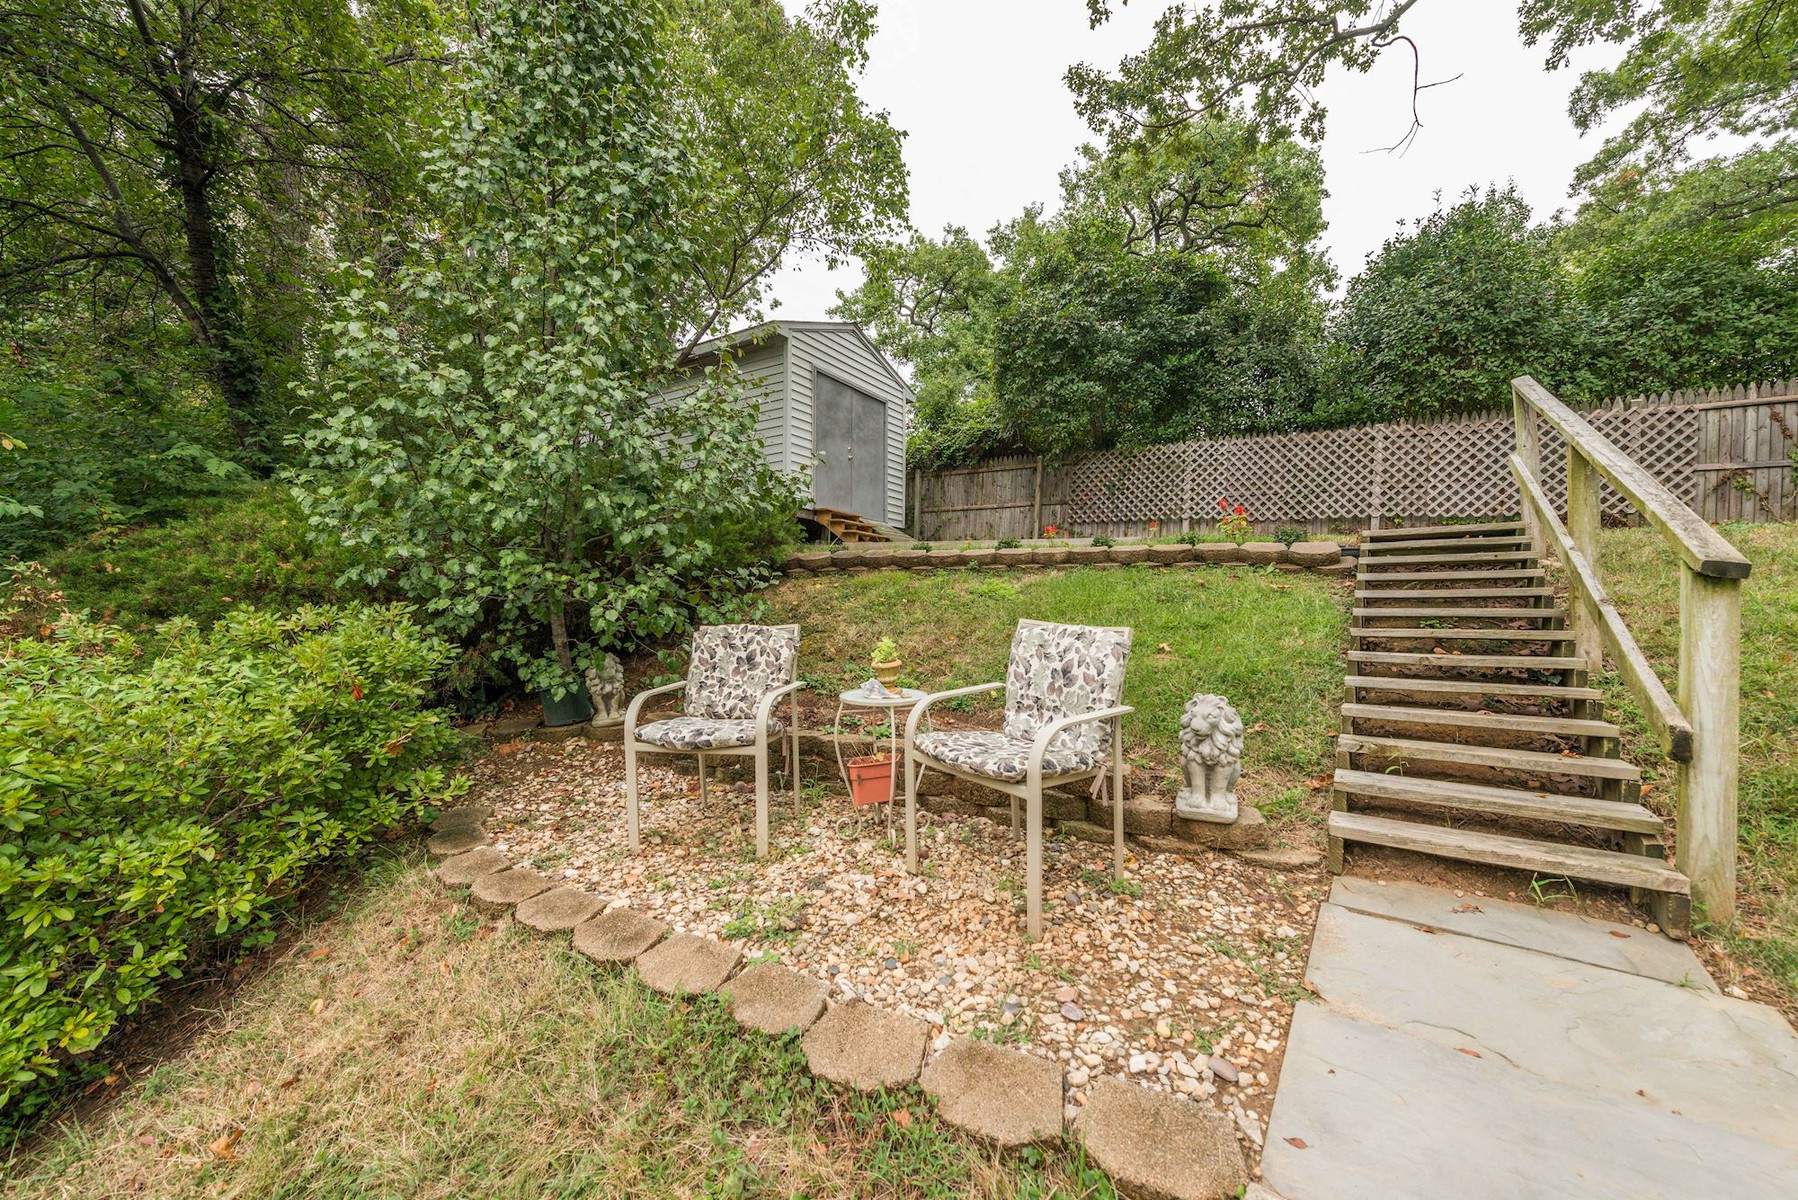 Additional photo for property listing at 7113 Fort Hunt Road, Alexandria 7113 Fort Hunt Rd Alexandria, Virginia 22307 Estados Unidos